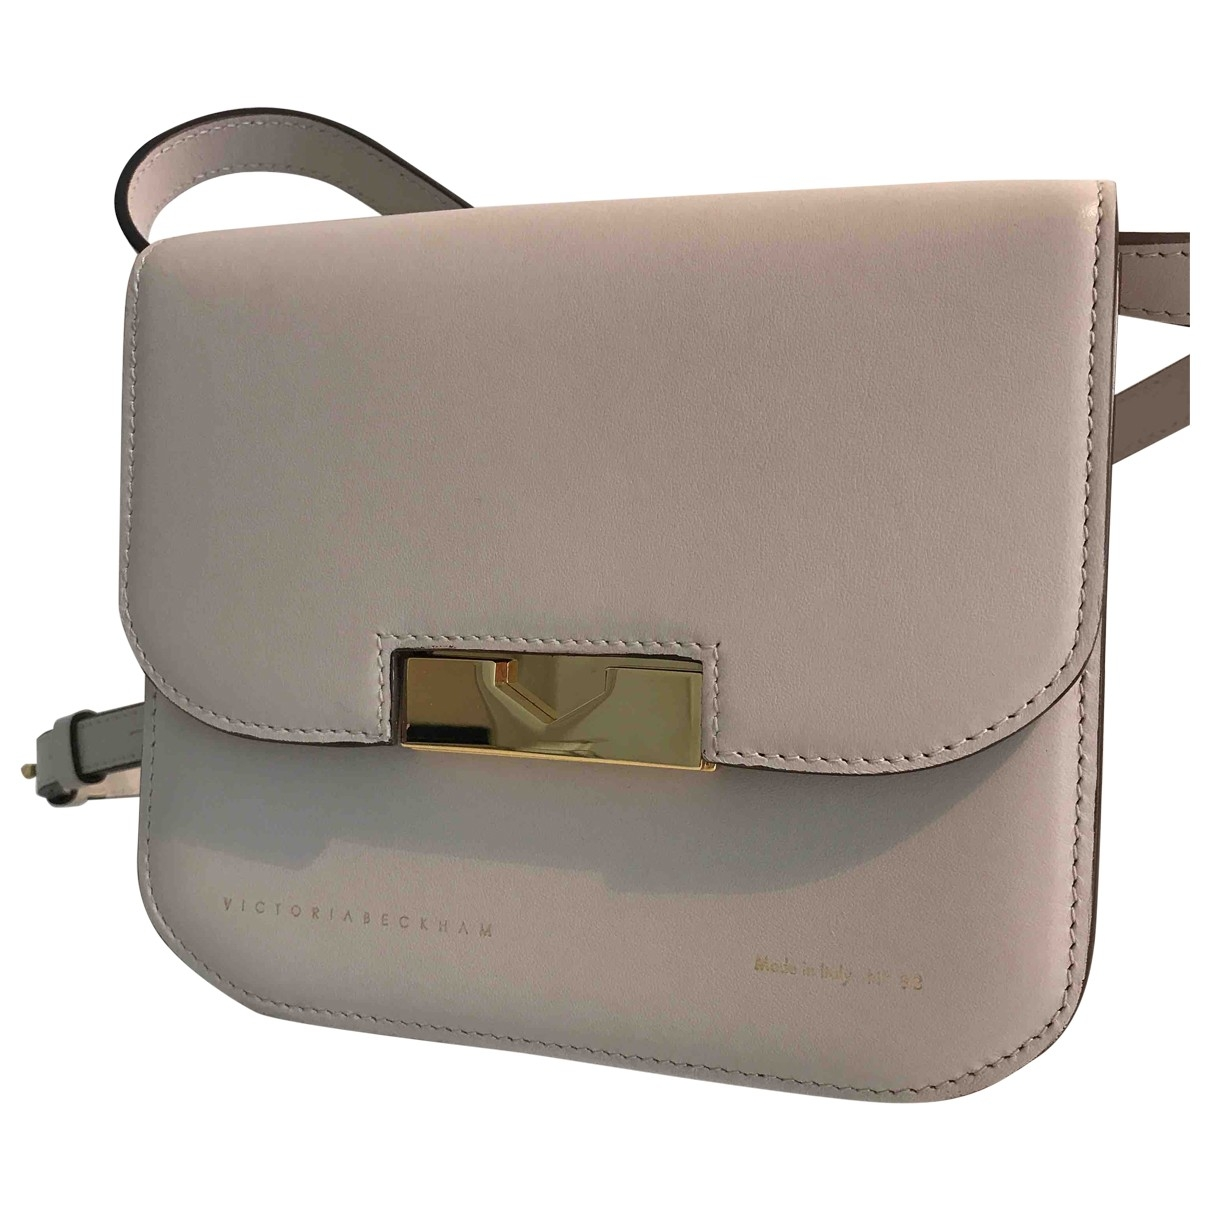 Victoria Beckham \N Ecru Leather handbag for Women \N